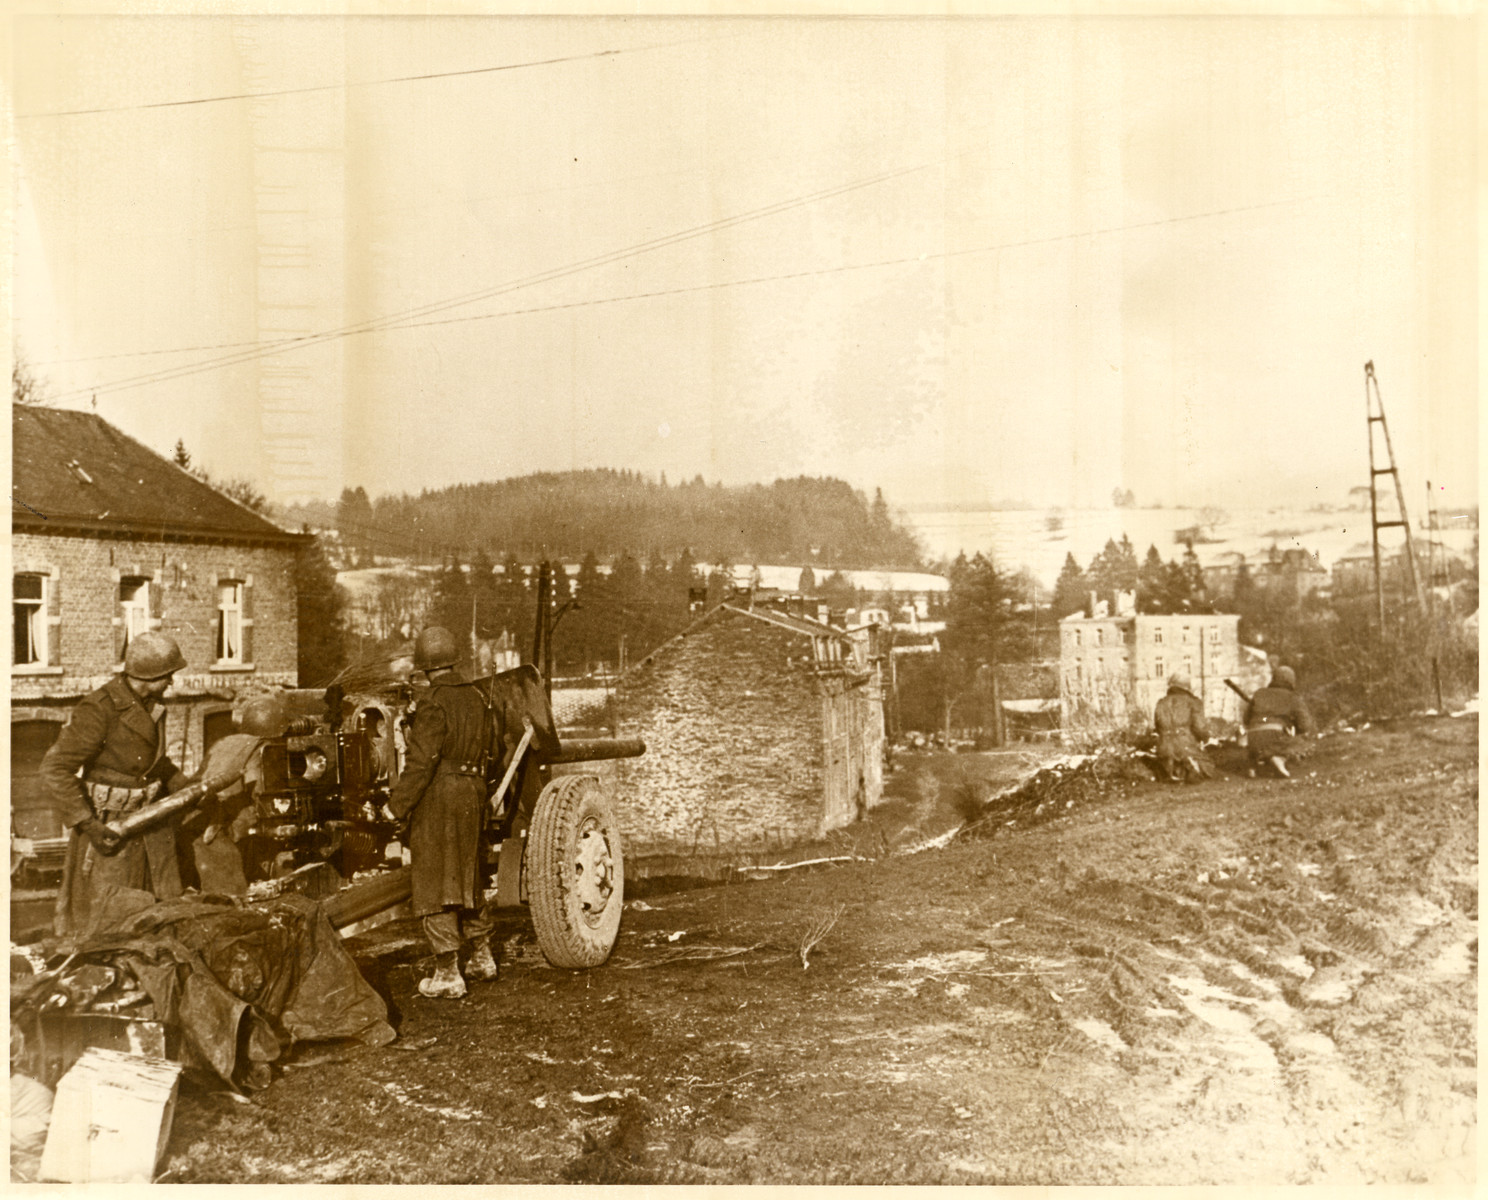 American forces load their weapons and prepare for action in an unidentified town.